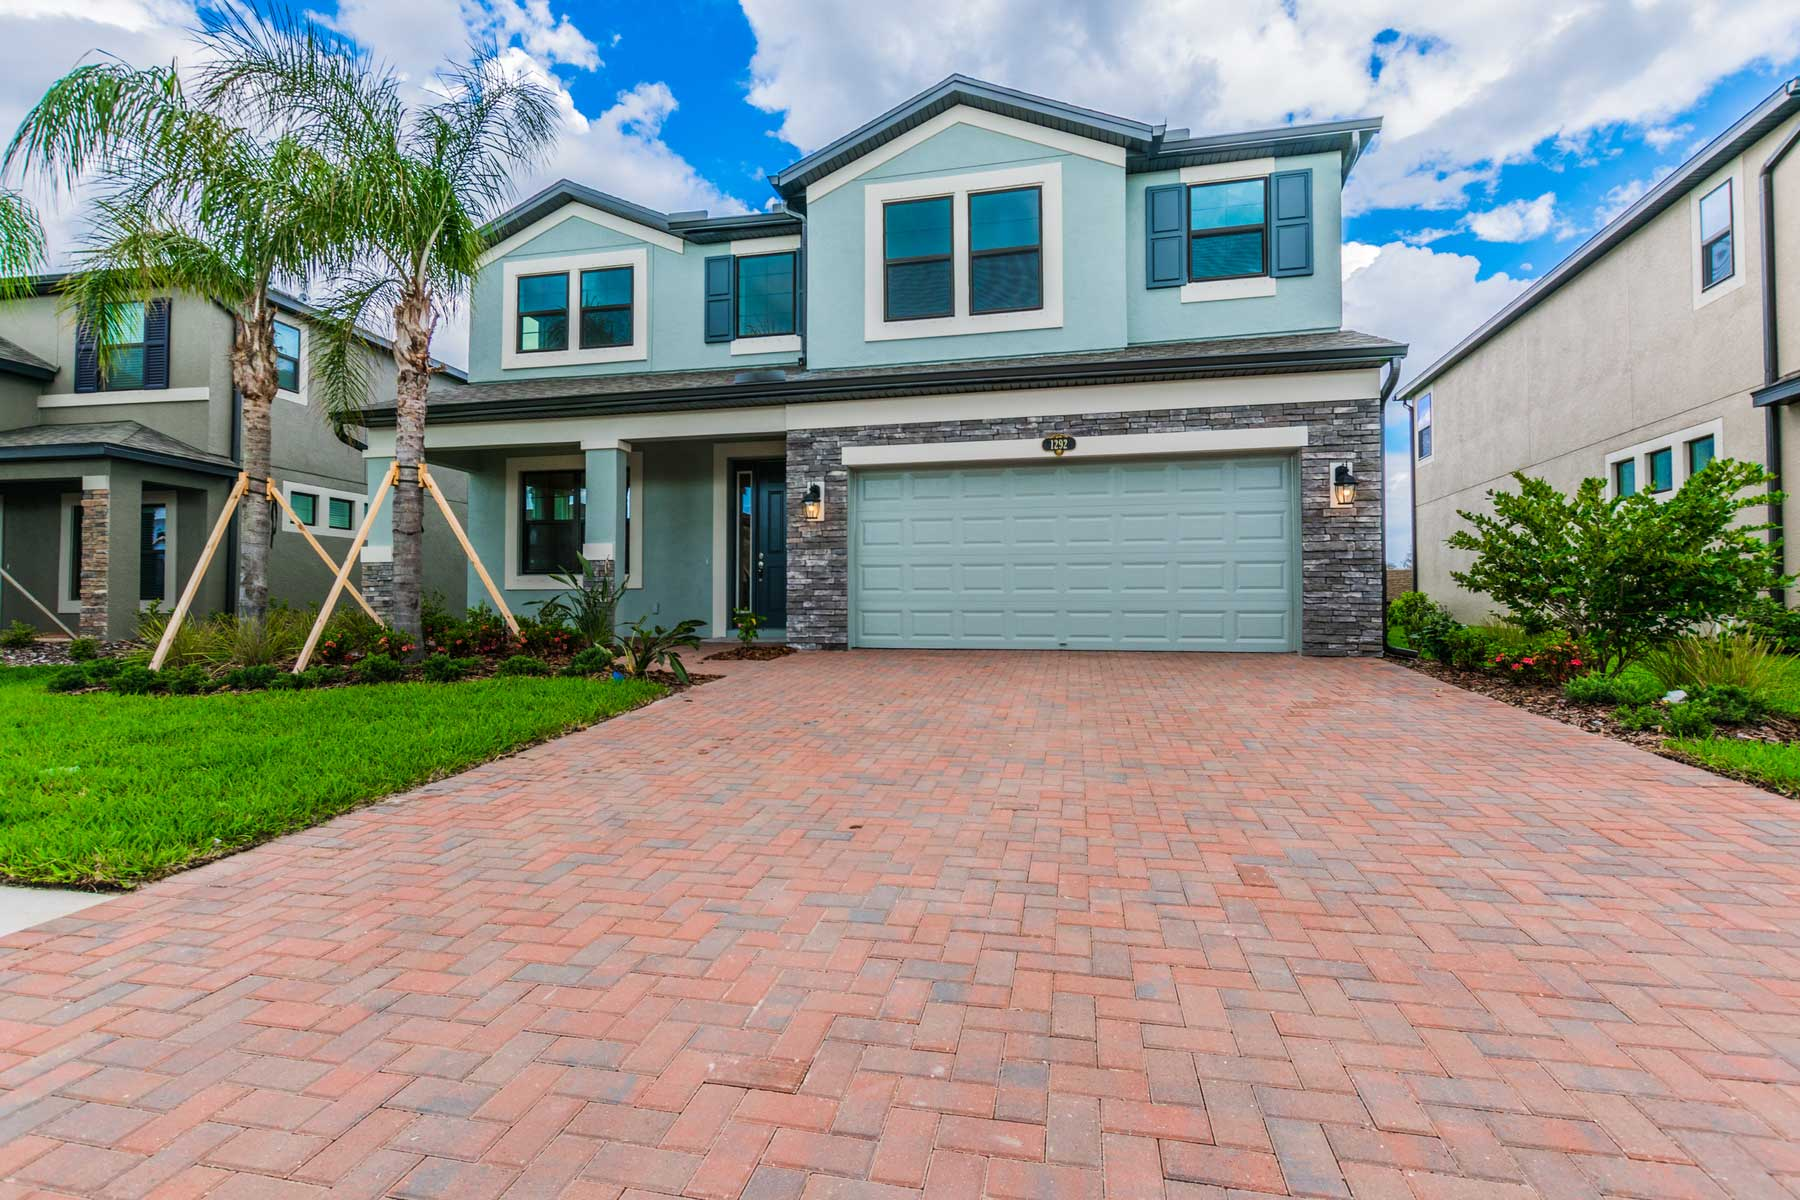 Long Lake Ranch - Homes for Sale in Lutz, FL - M/I Homes